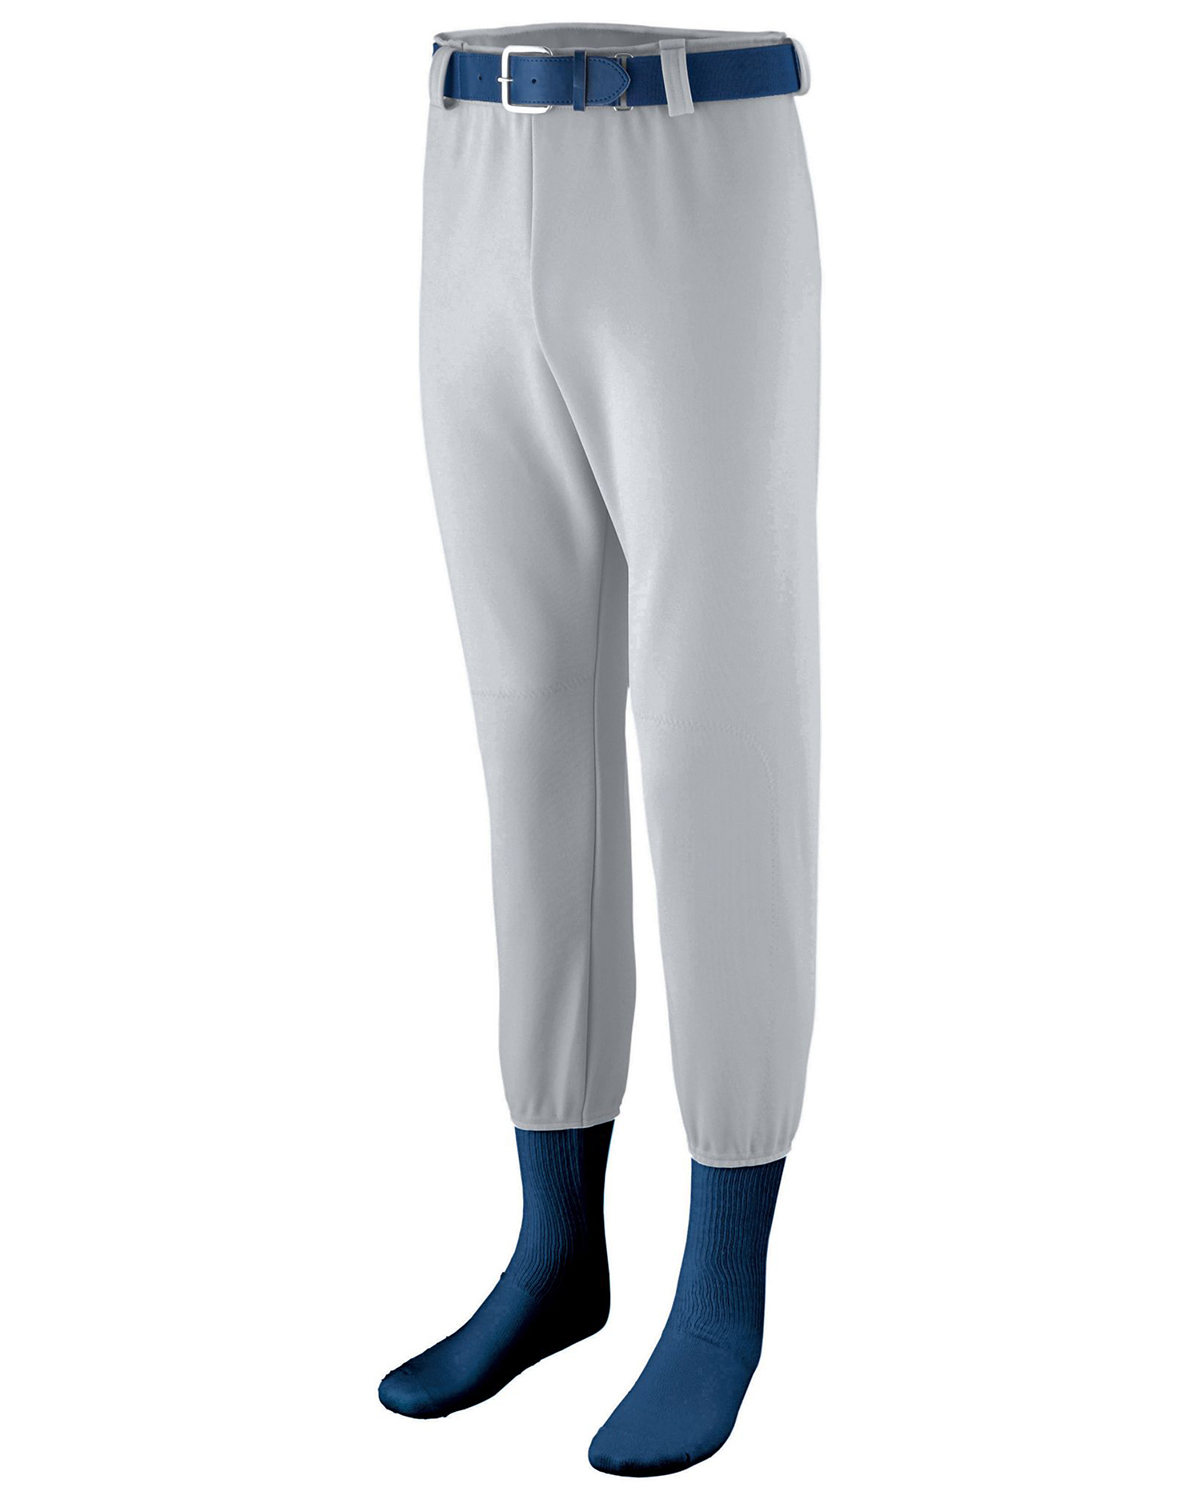 Augusta 864 Boys PullUp Pro Baseball Pants With Drawcord at GotApparel